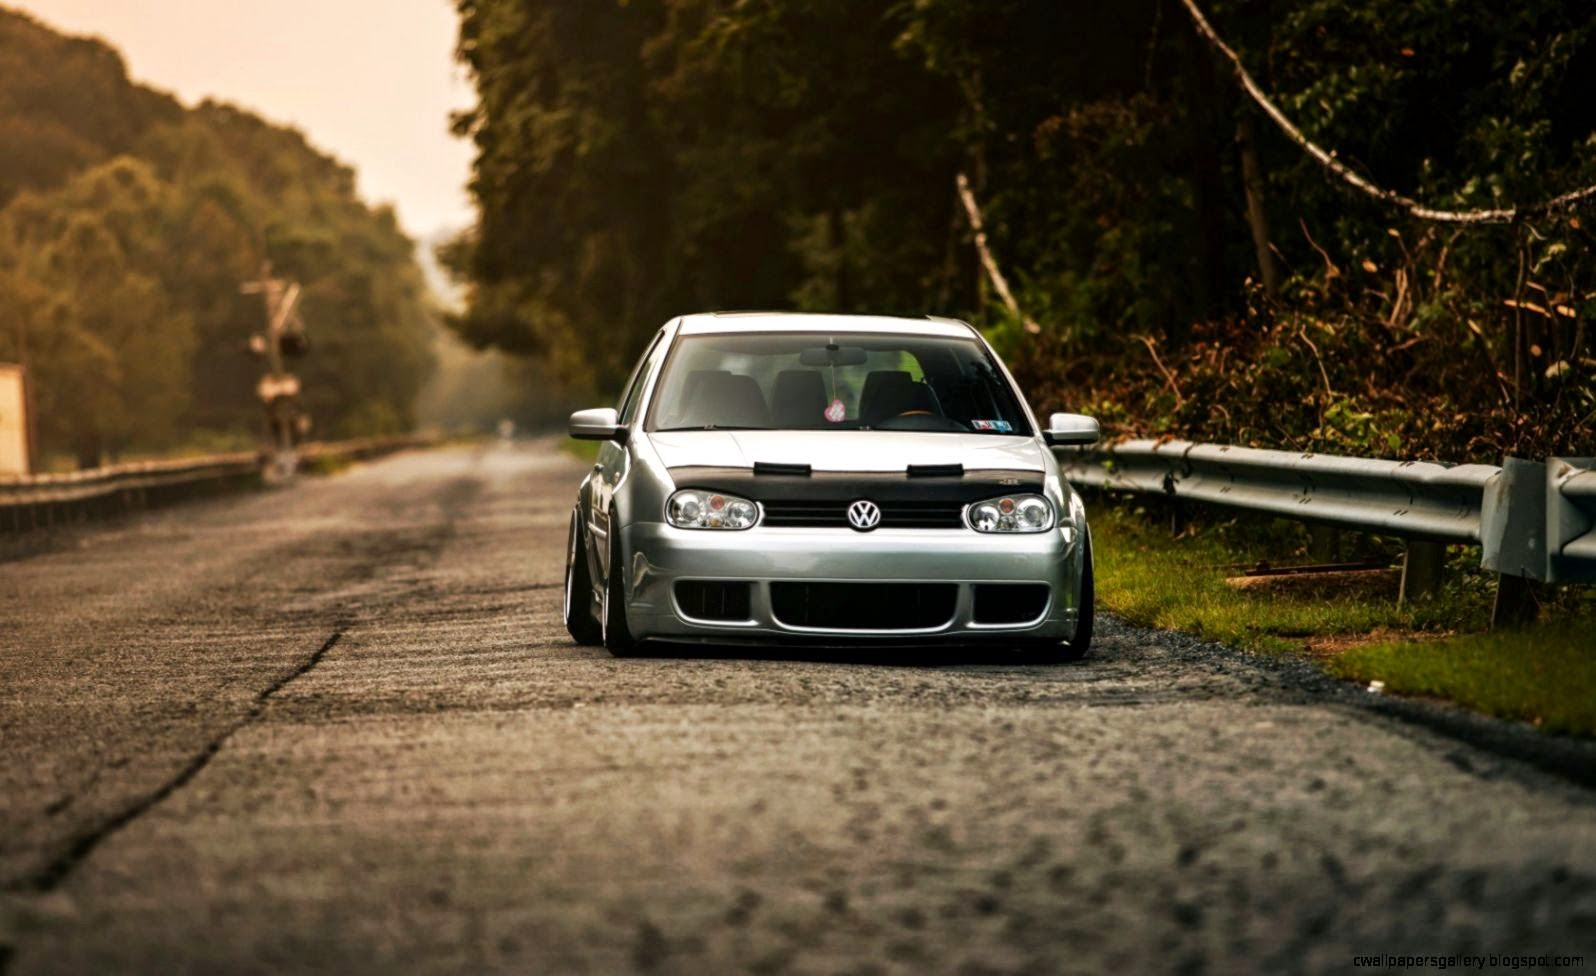 Volkswagen Golf MK4 Tuning Car Road 7011251